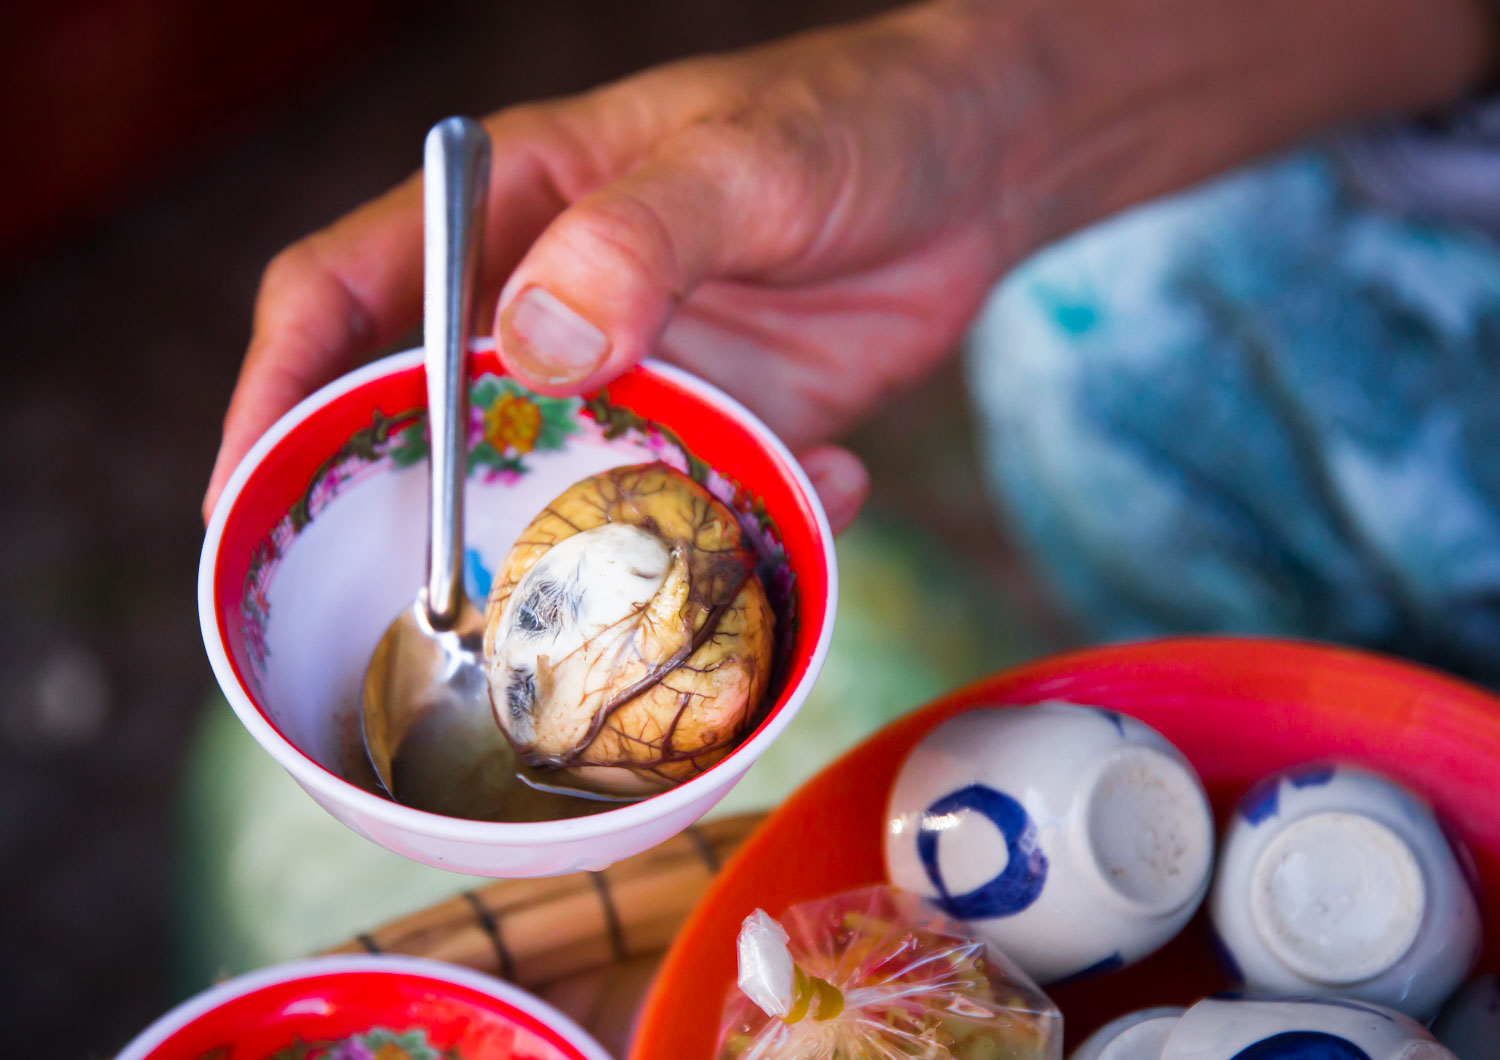 Balut egg, an asian delicacy made from fermented duck embryo.